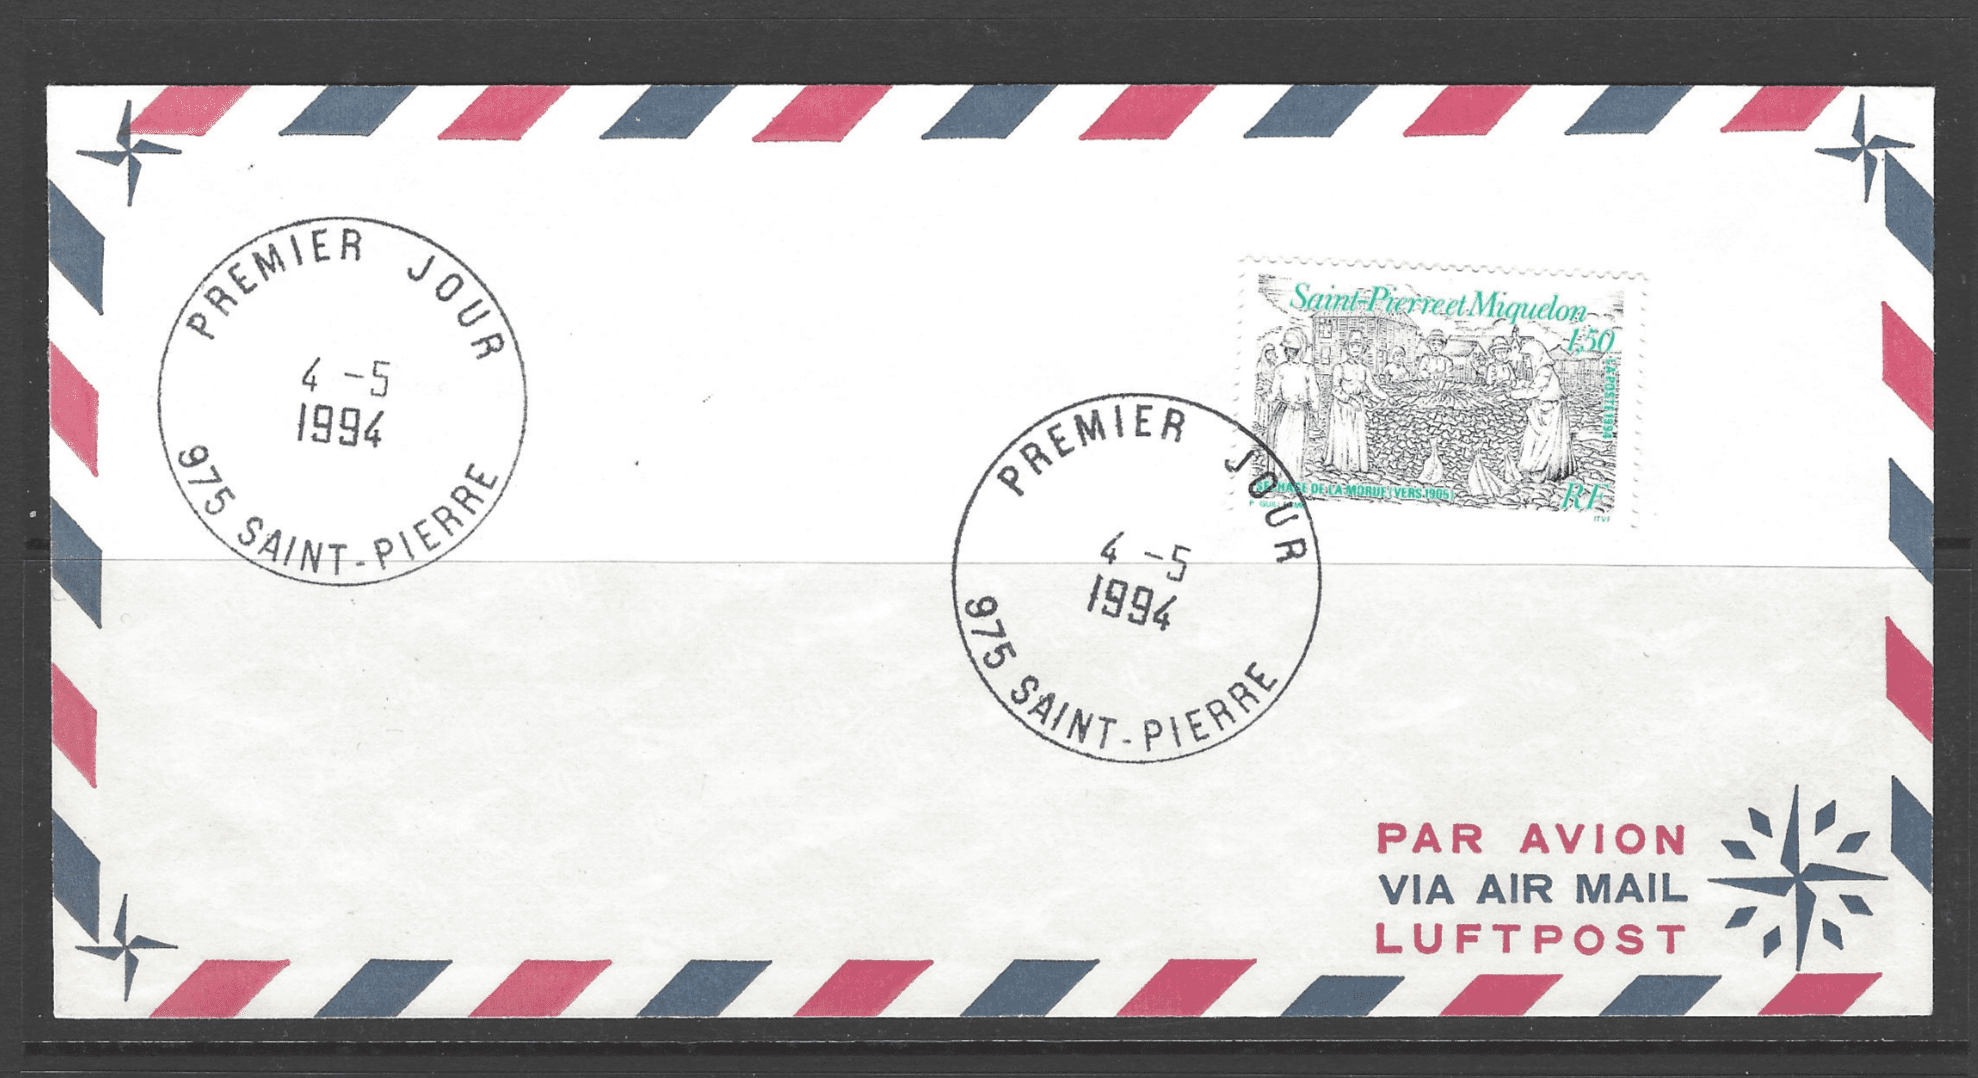 SG 712 on first day cover, St Pierre et Miquelon Stamps